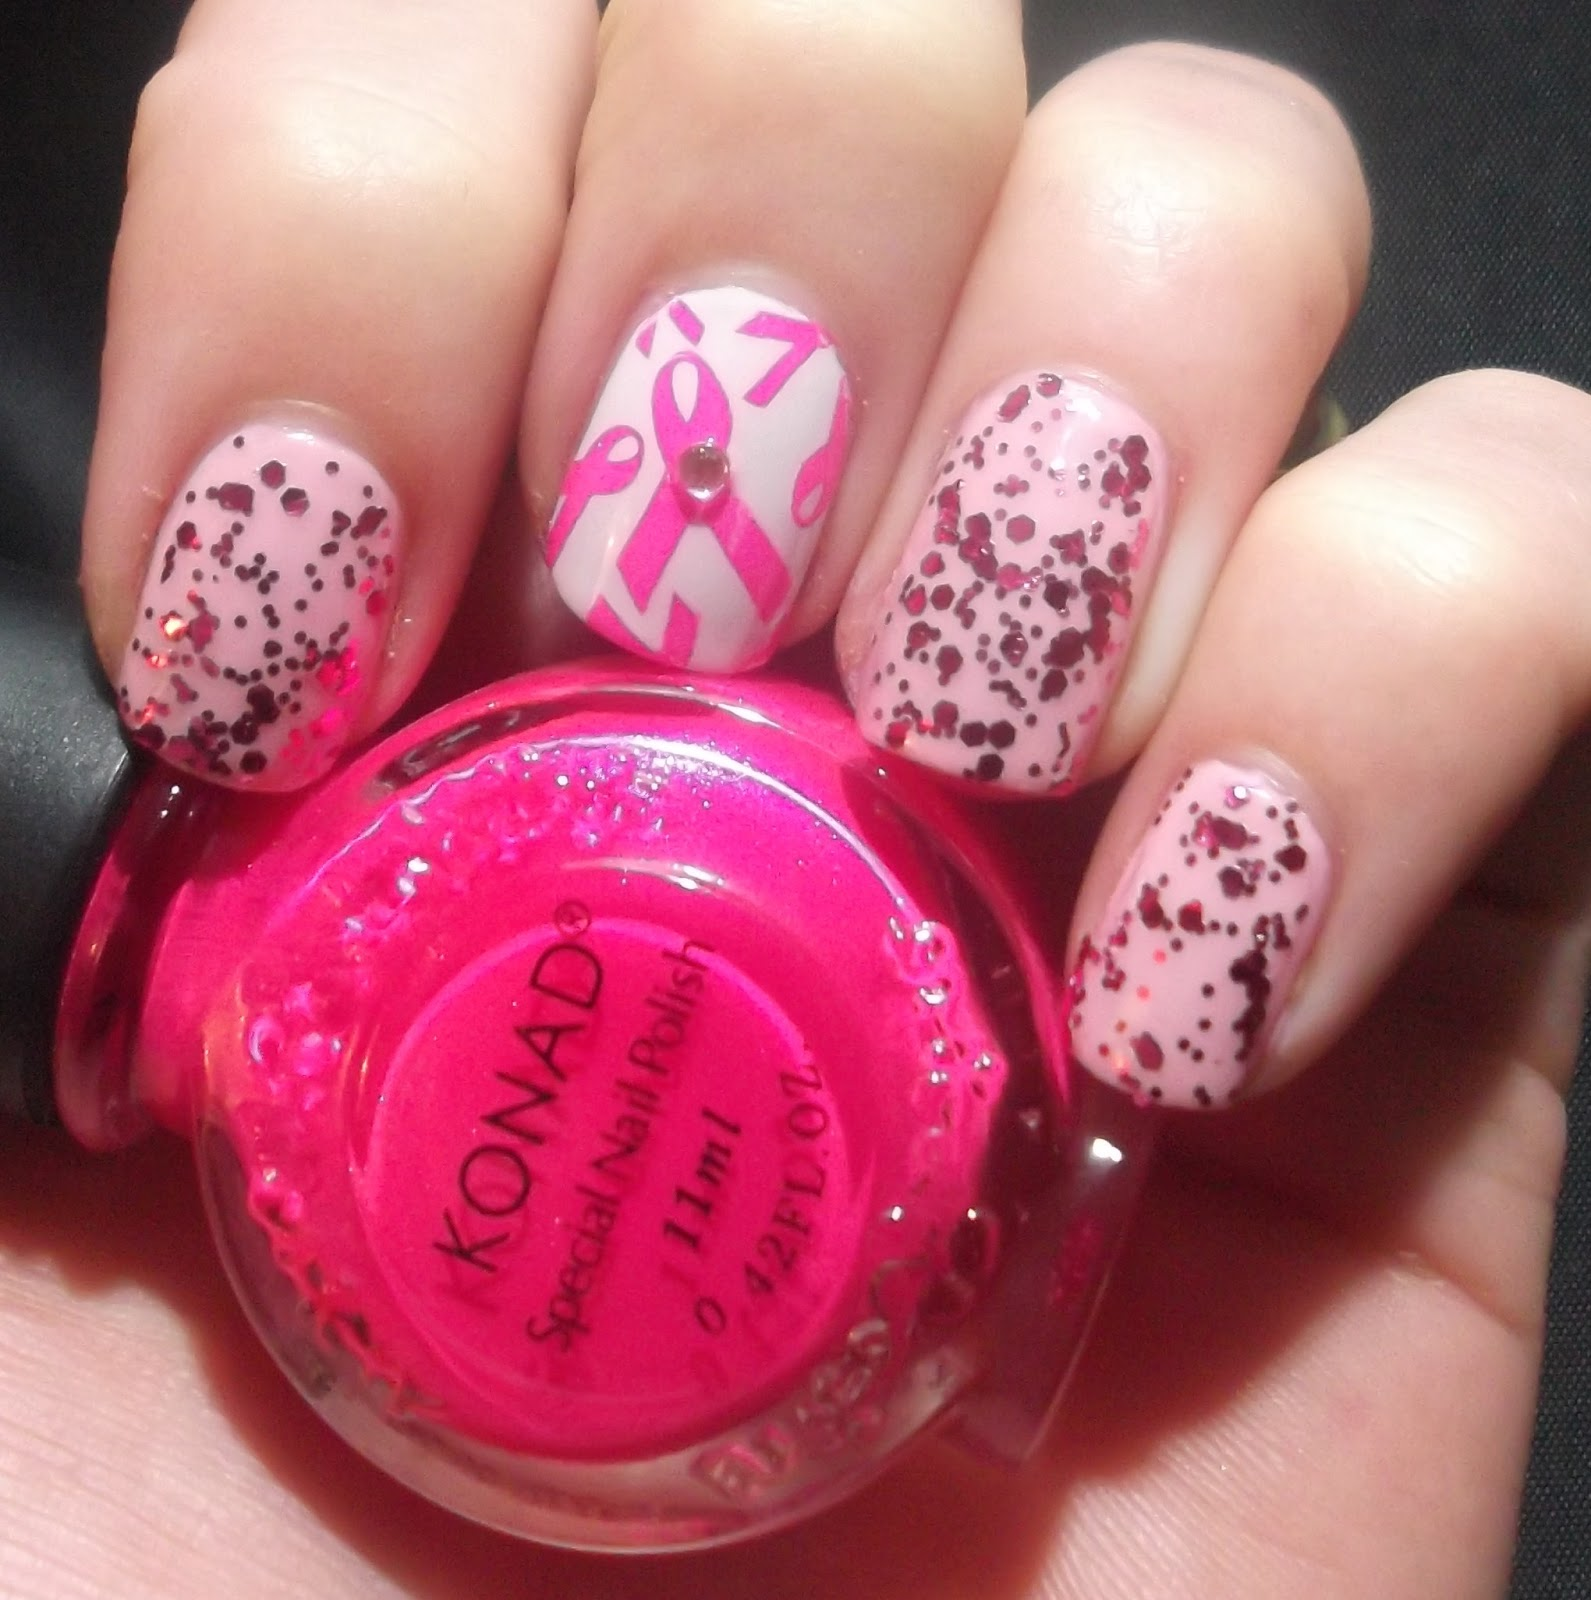 Lou is Perfectly Polished: Breast Cancer Awareness Nail Art